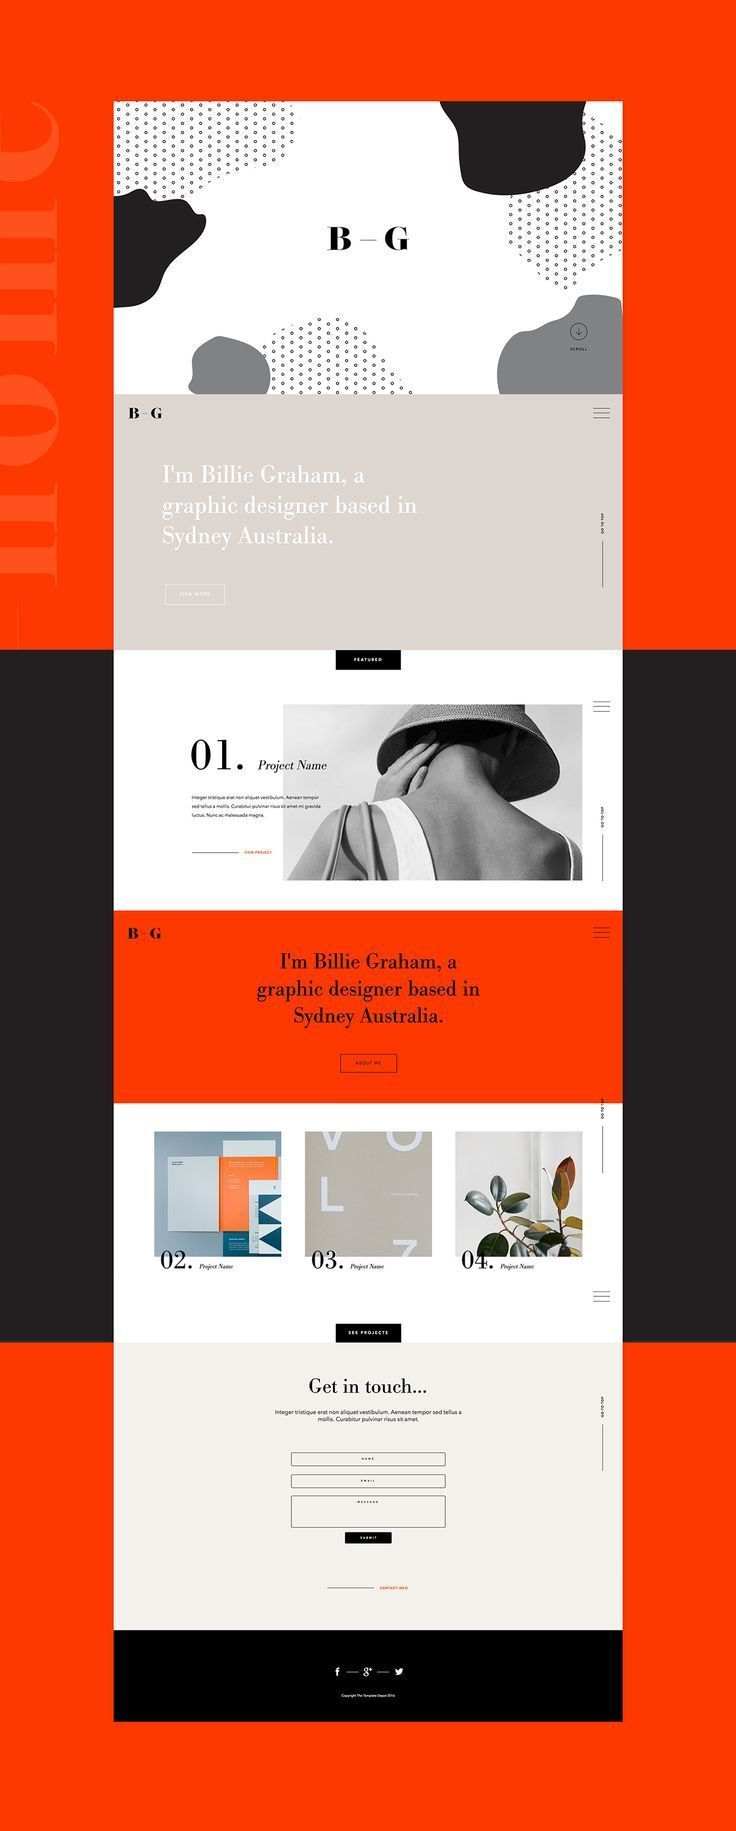 Presentation Design Ideas, Simple design layout #MobileWebDesign